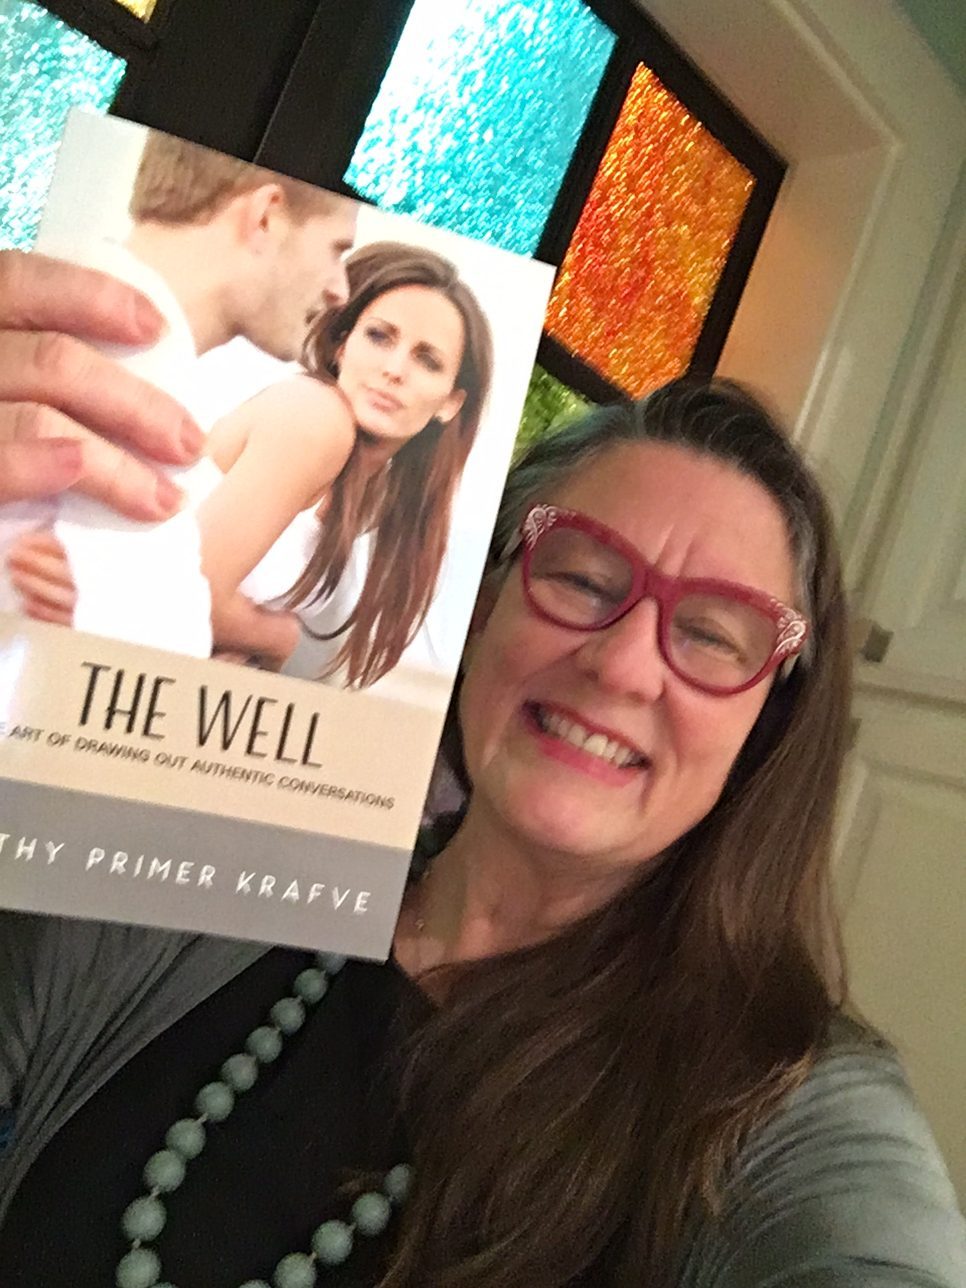 The Well Author with Cathy Krafve